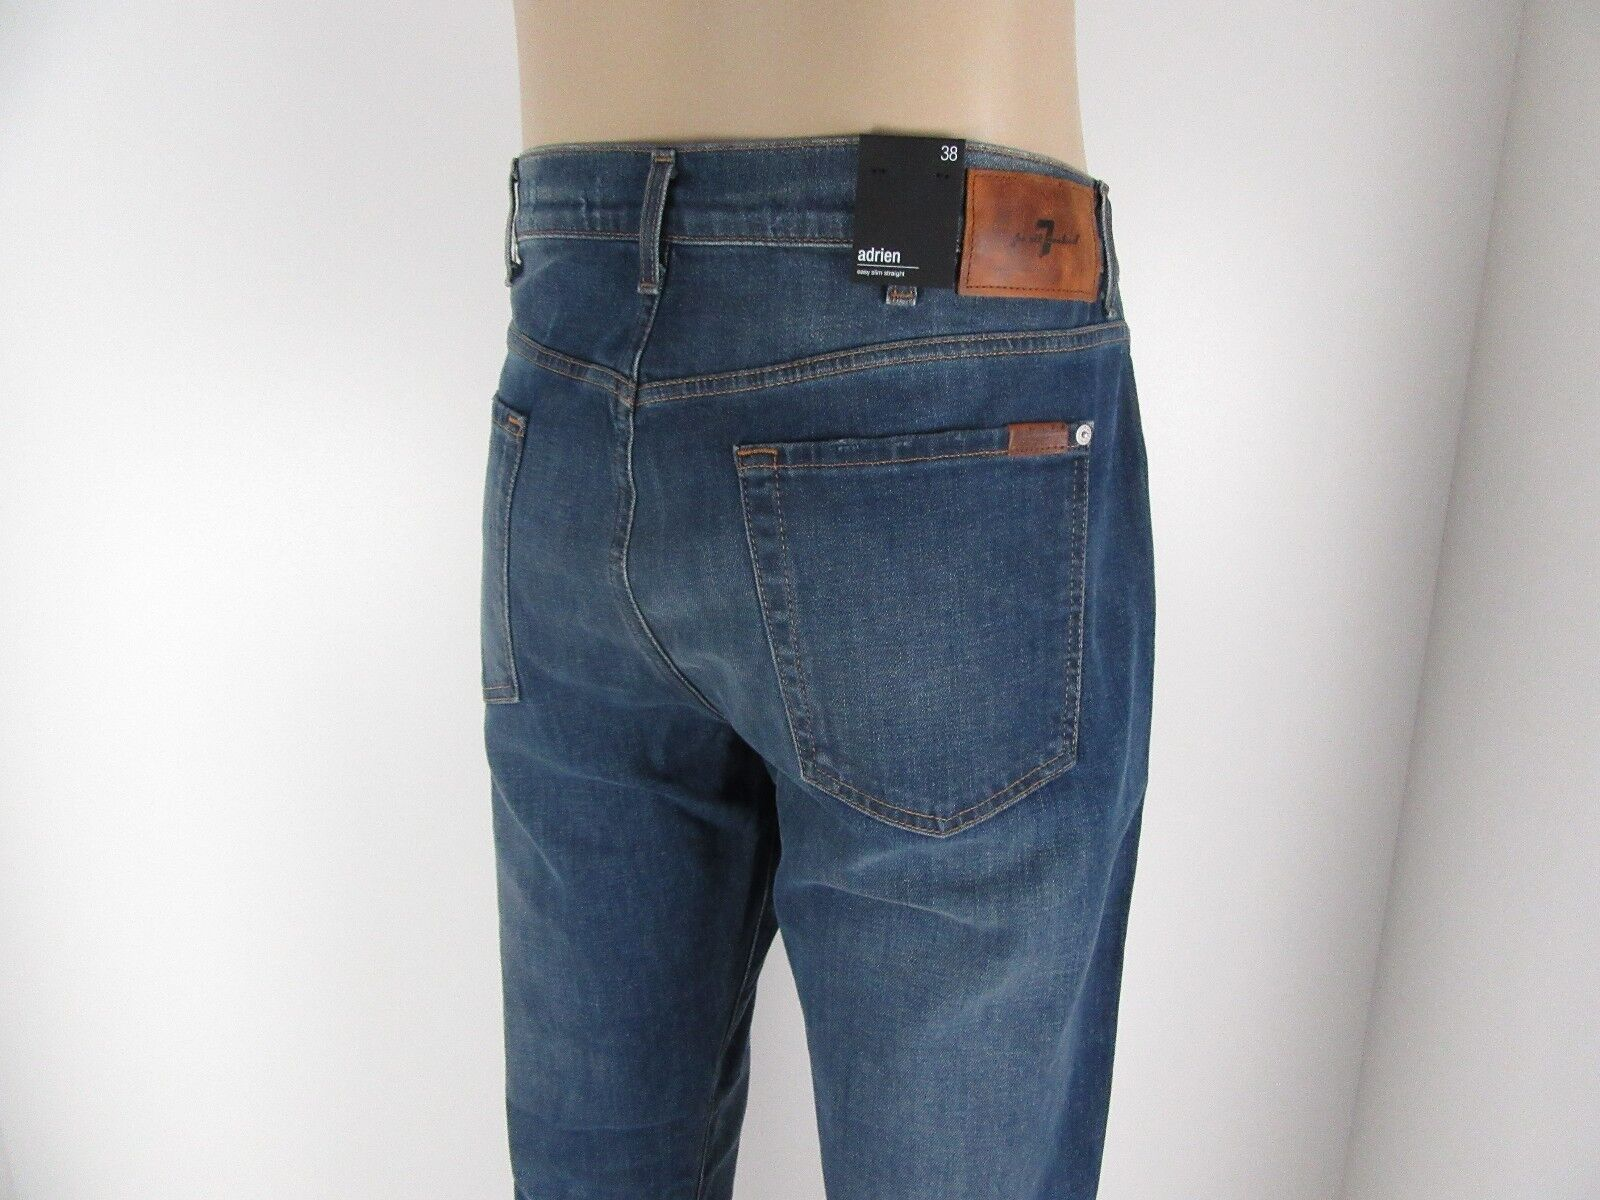 NWT 7 Seven For All Mankind ADRIEN, Easy Slim Straight Leg, WLKO, Size 38,